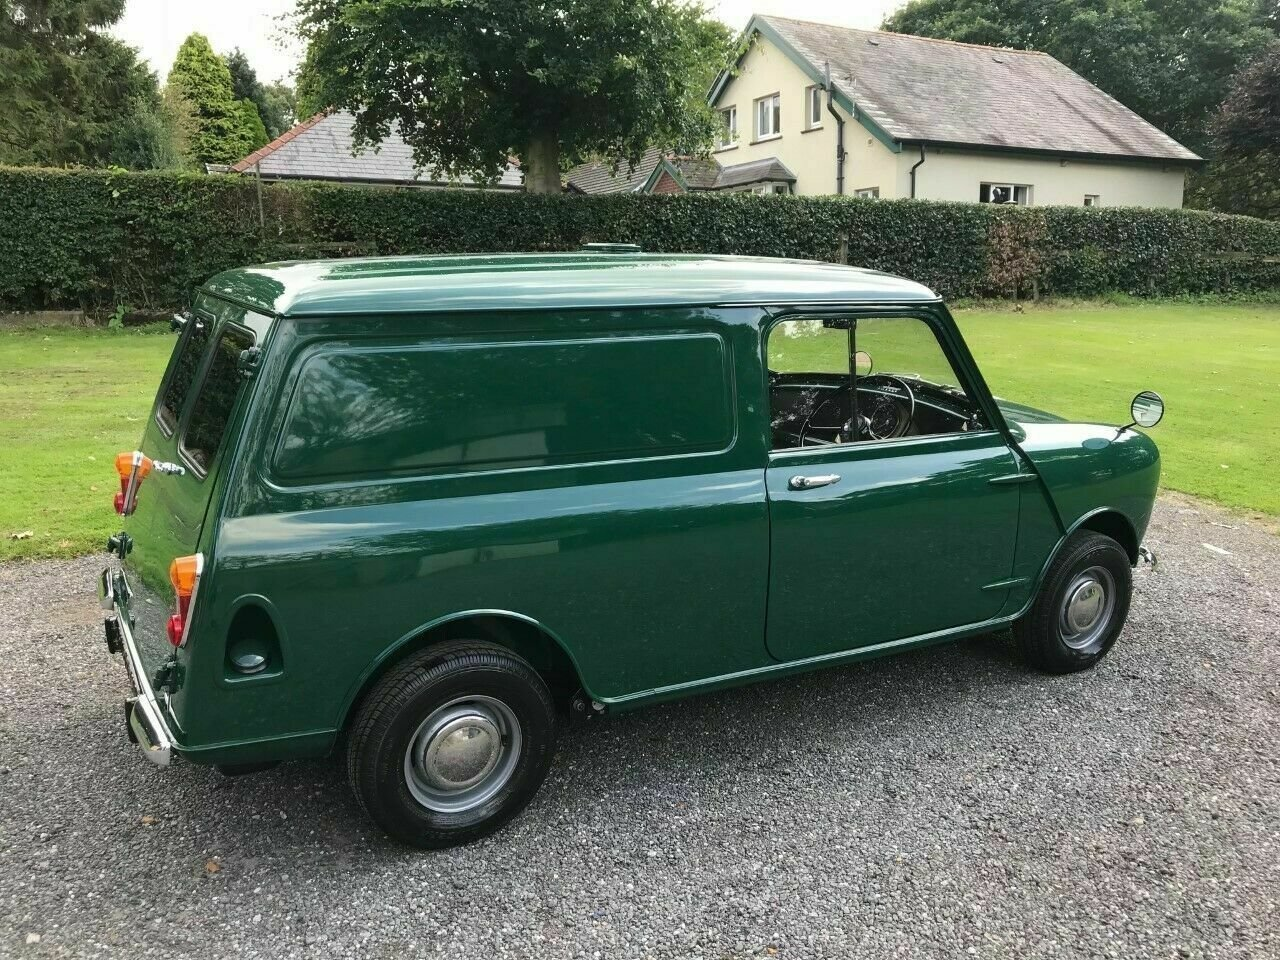 1969 MORRIS MINI VAN GREEN 17K STUNNING CONCOURS WINNER!!! For Sale (picture 3 of 6)